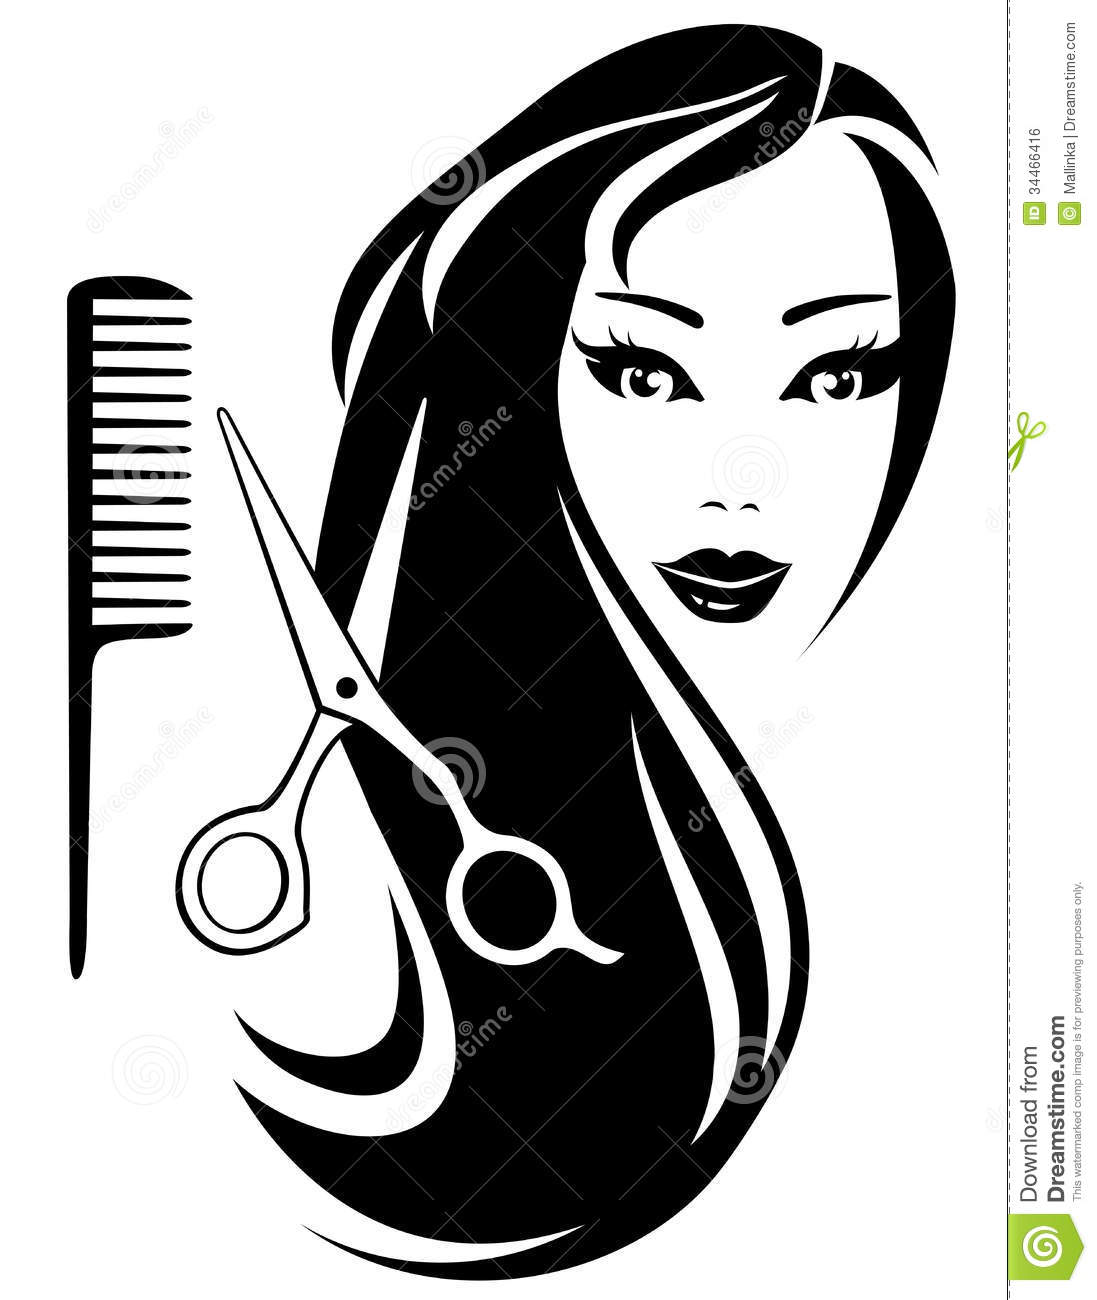 HD wallpapers hair scissors vector free